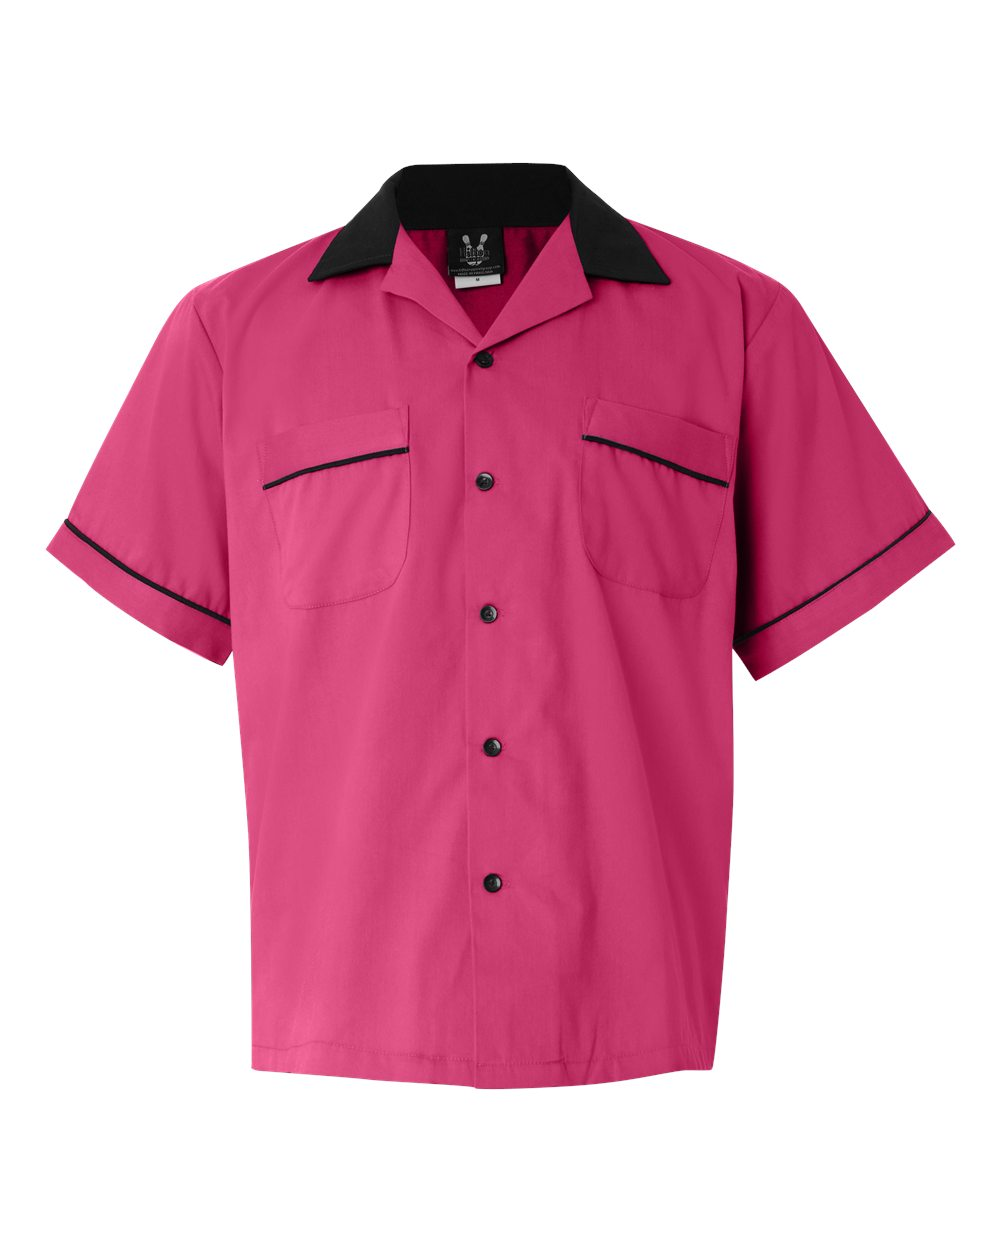 How to Dress for a 50s Sock Hop Classic Bowler 2.0 Bowling Shirt - Pink  Black $39.95 AT vintagedancer.com